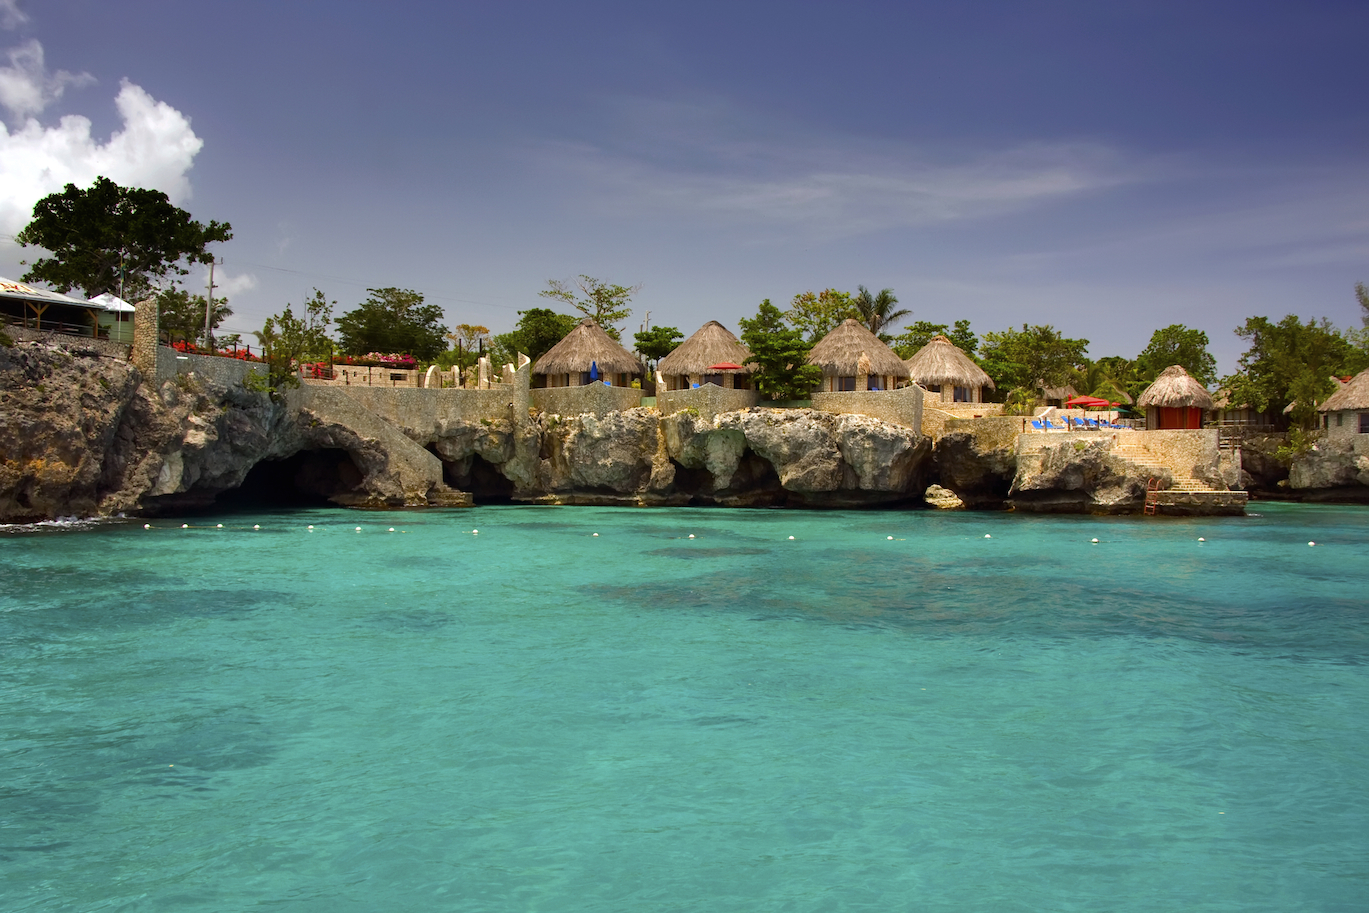 Jamaica Travel Guide - Drifters Guide to the Planet